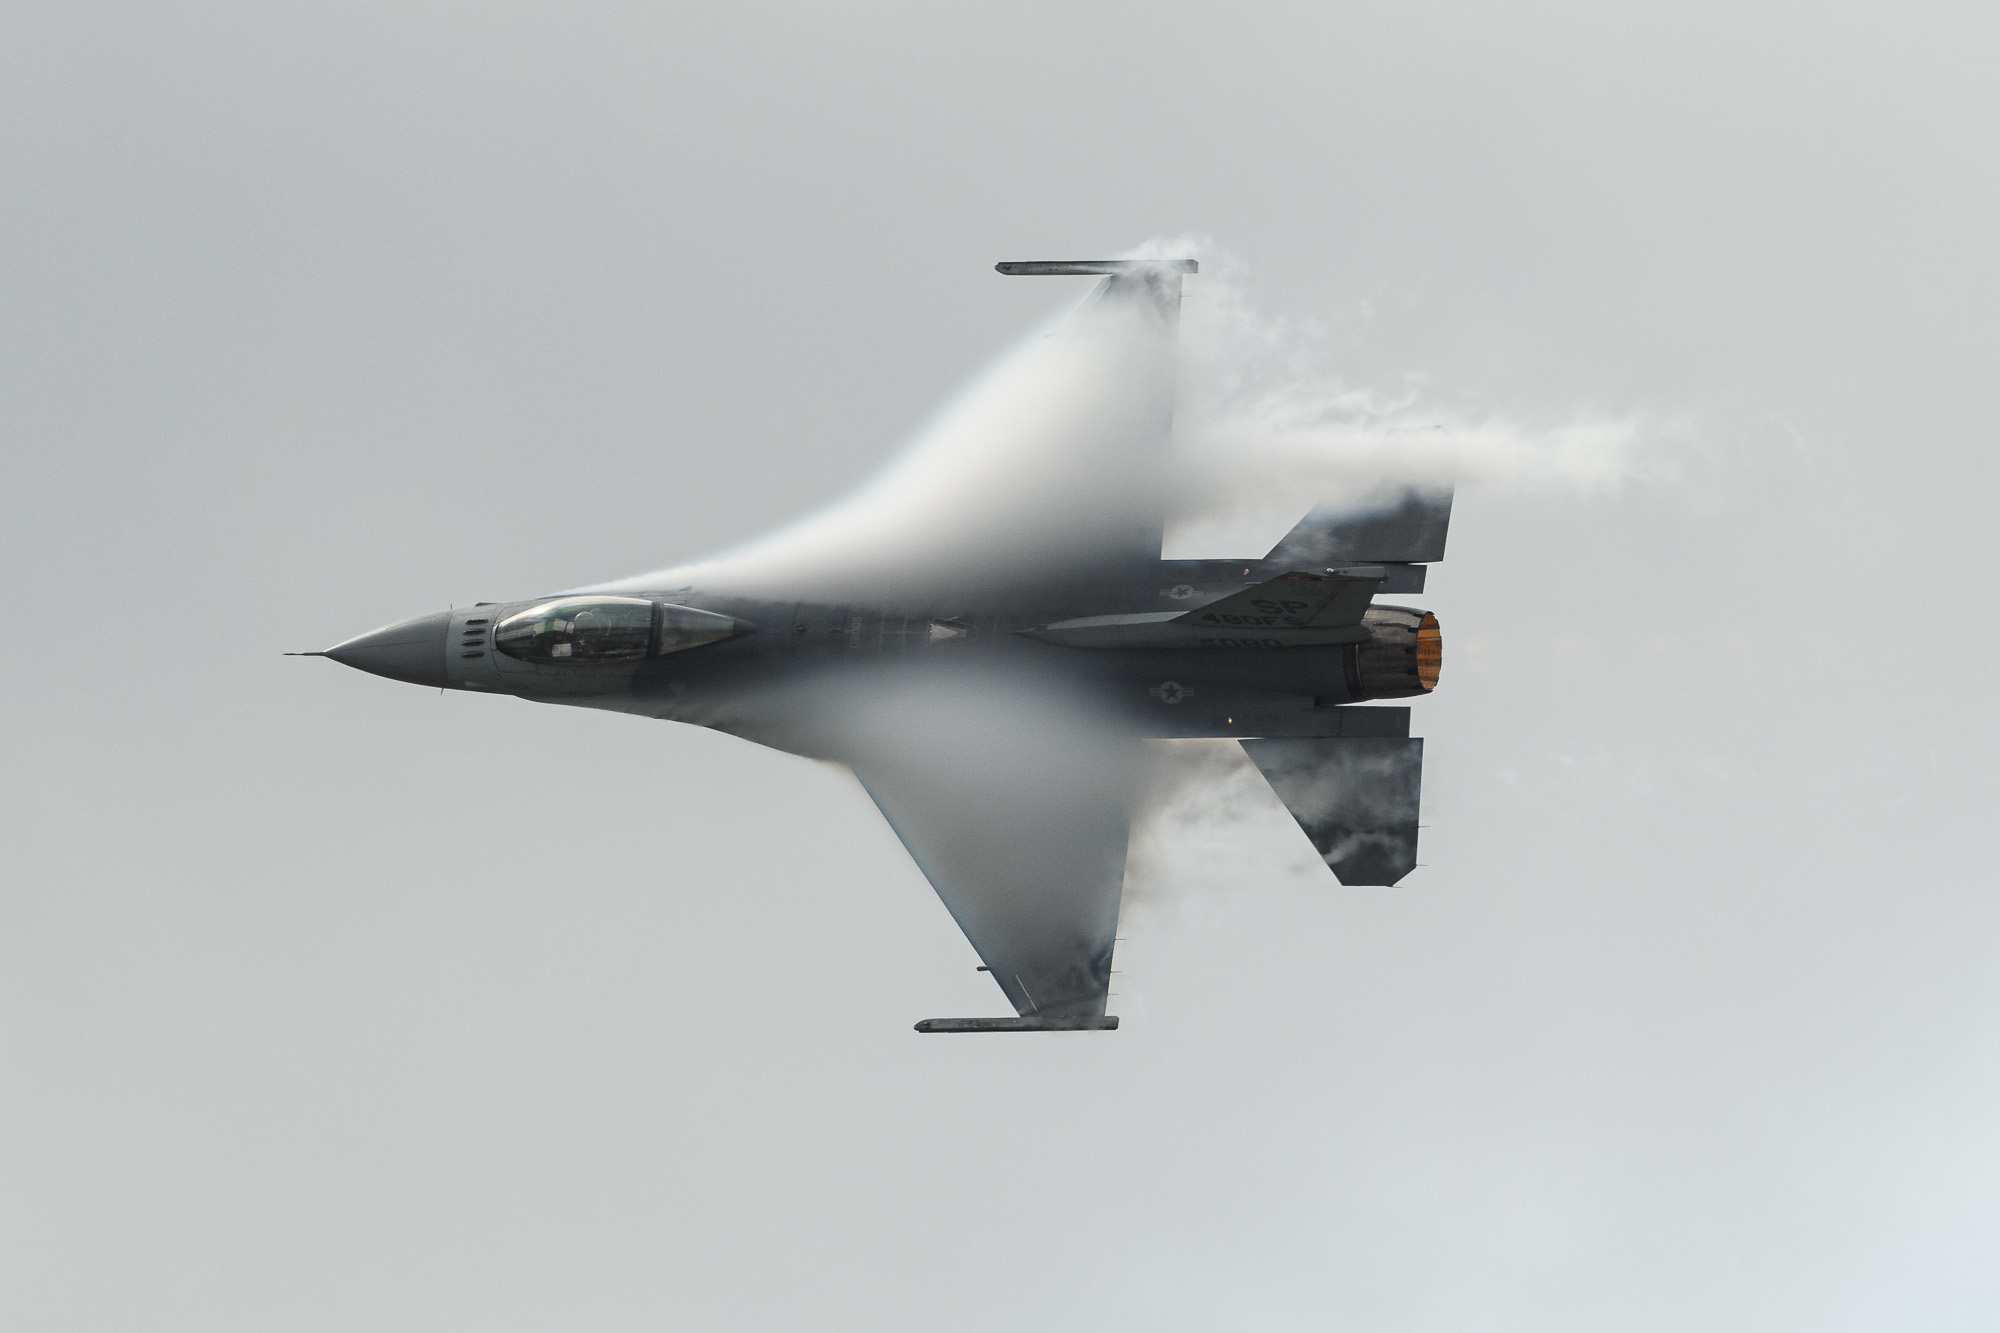 USAF F-16, afterburner on, creating its own clouds as it pulls a high-G turn under the low cloudbase